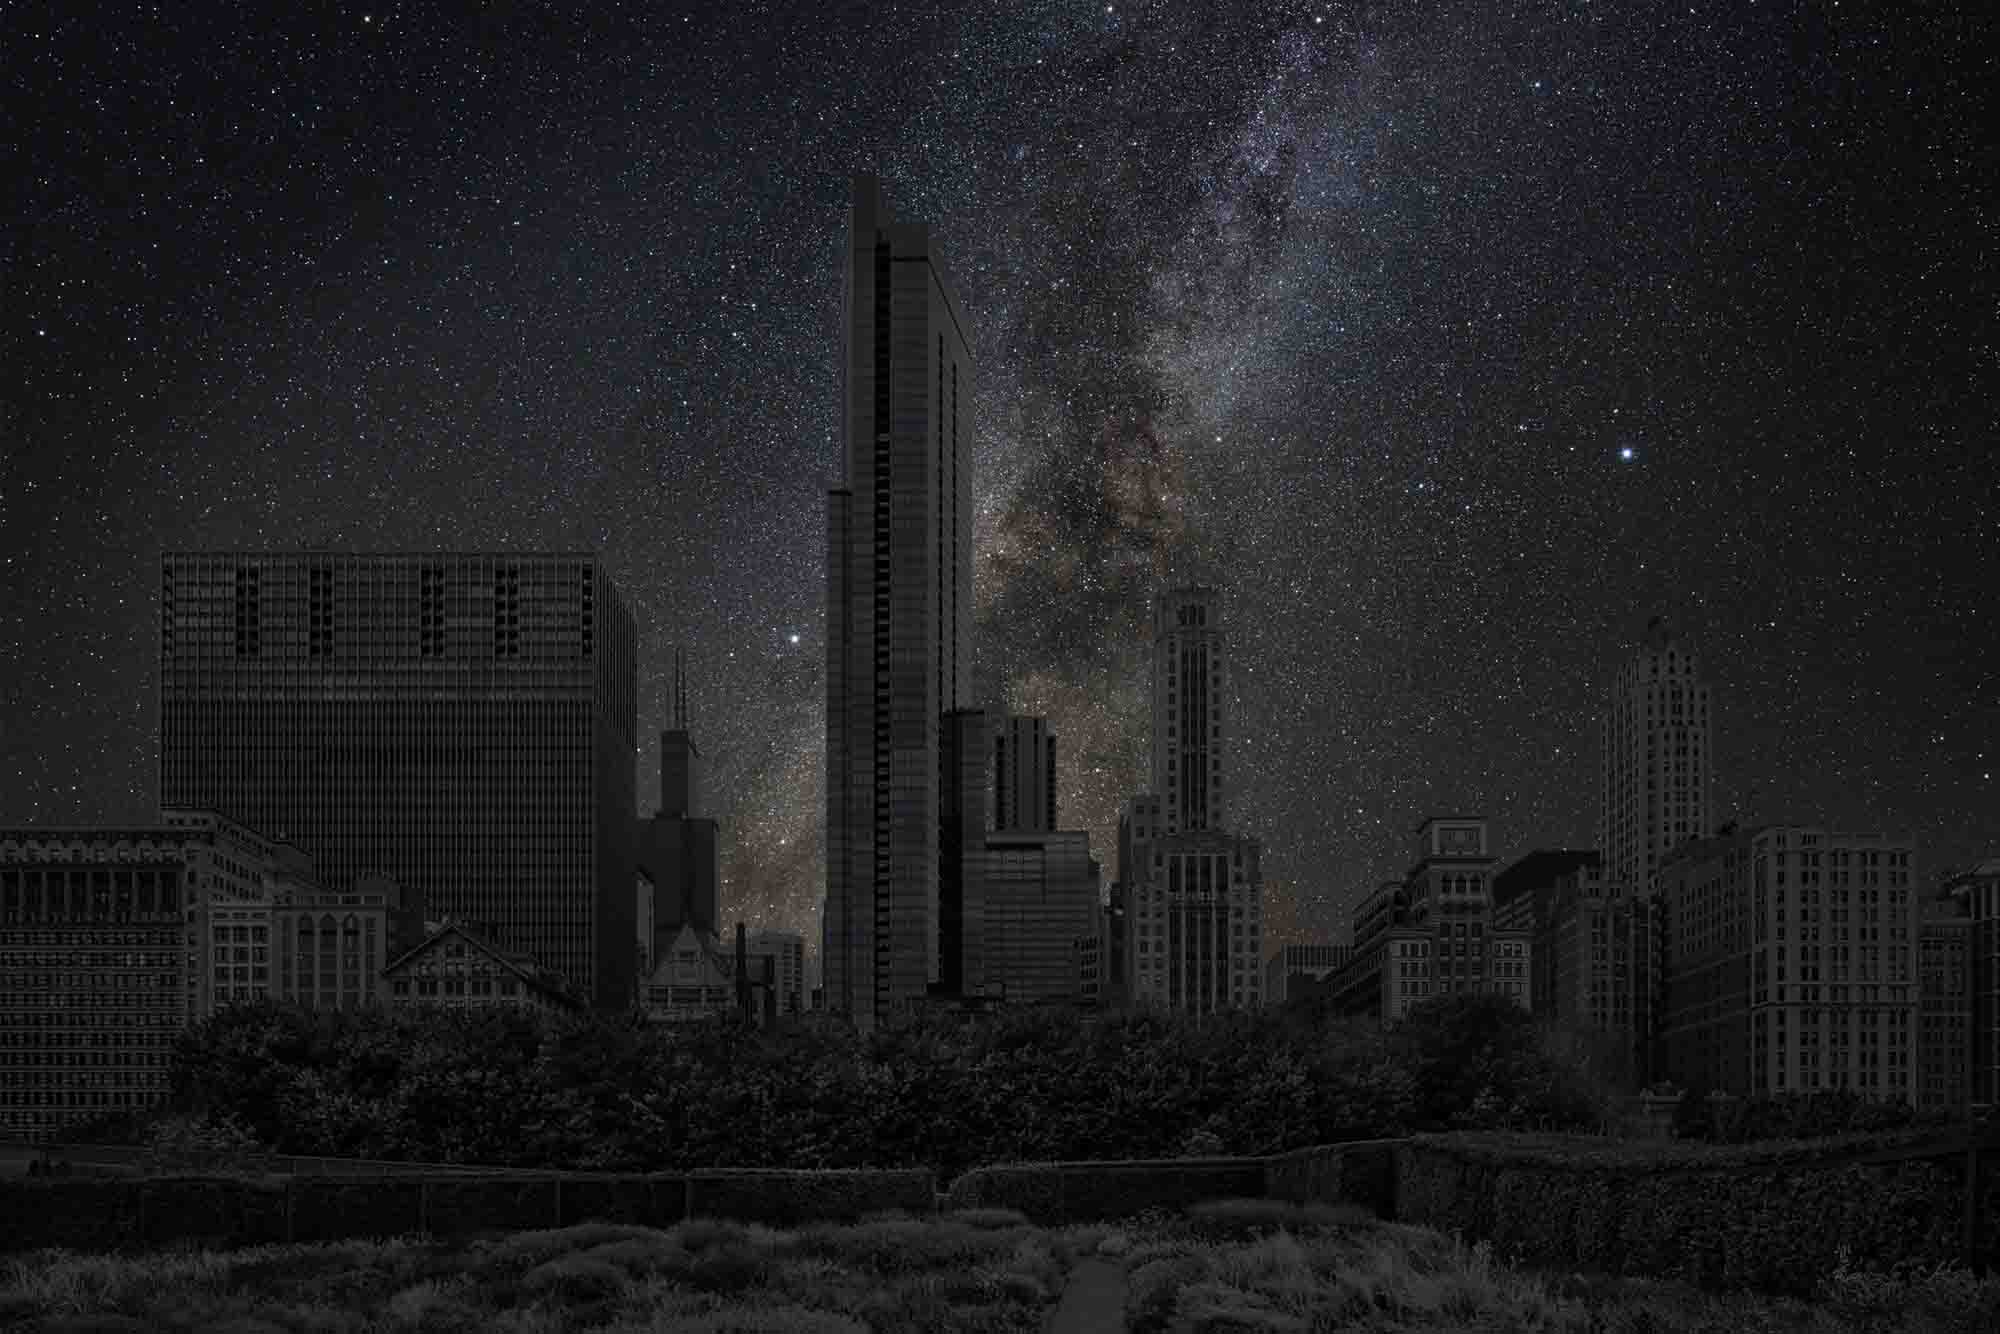 Chicago 41° 52' 54 2015-09-19  lst 0:28<br/>Darkened Cities - Villes éteintes